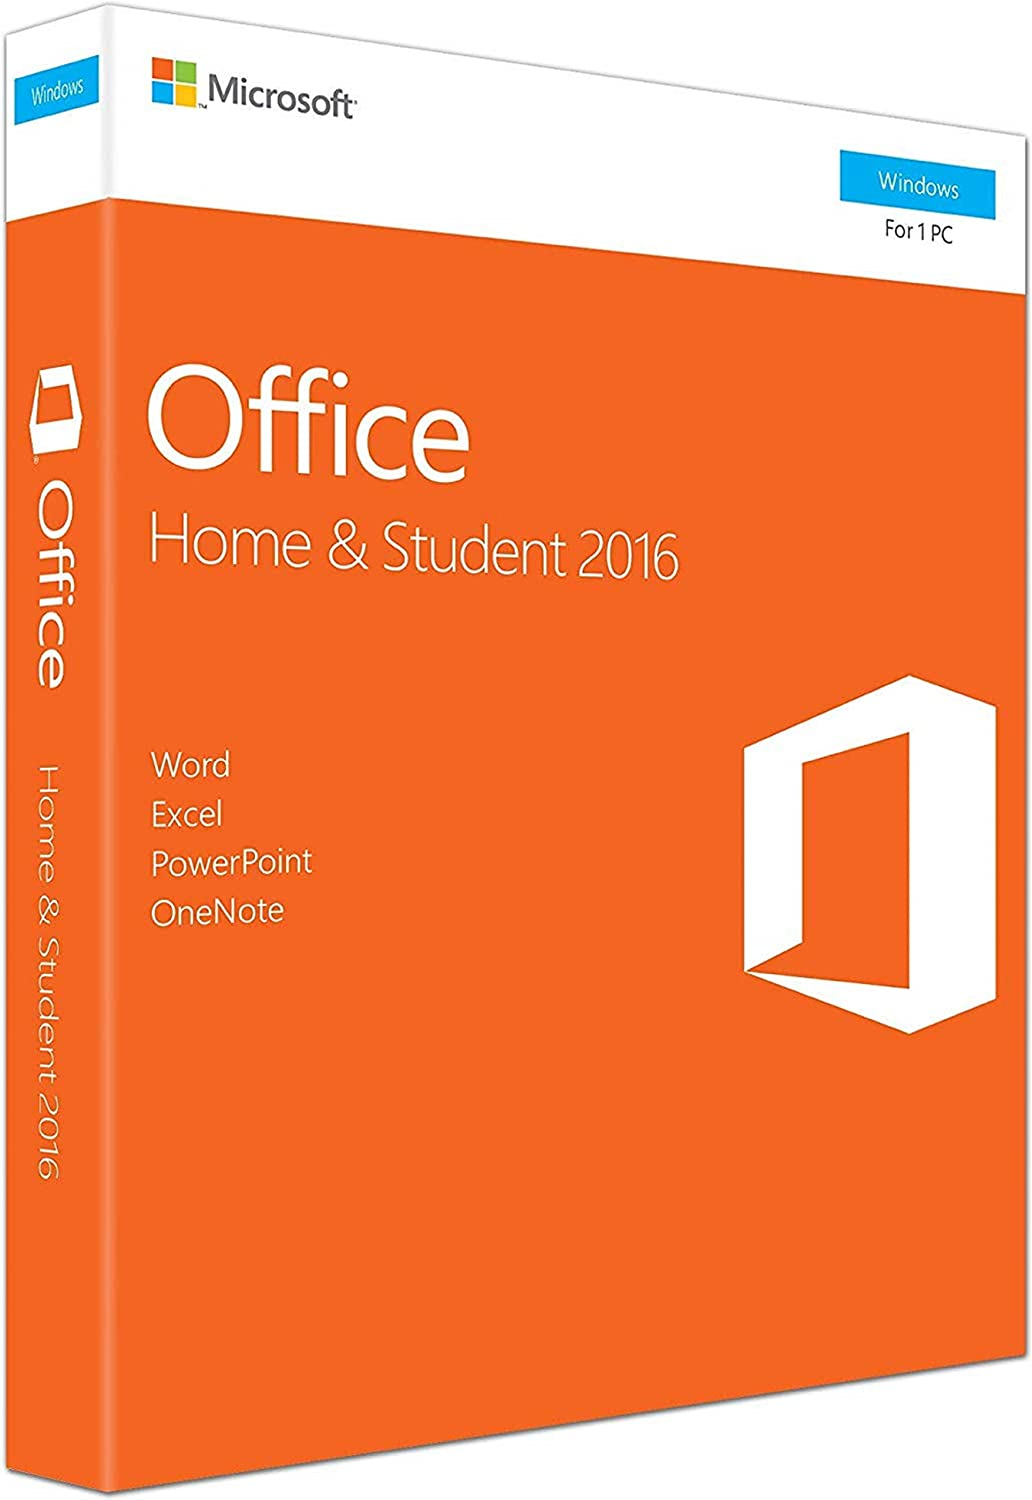 Office 2016 Home and Student - English - New - 1 PC - Box - KeyCard - Word Excel PowerPoint OneNote - Office Home and Student 2016 for Windows 10